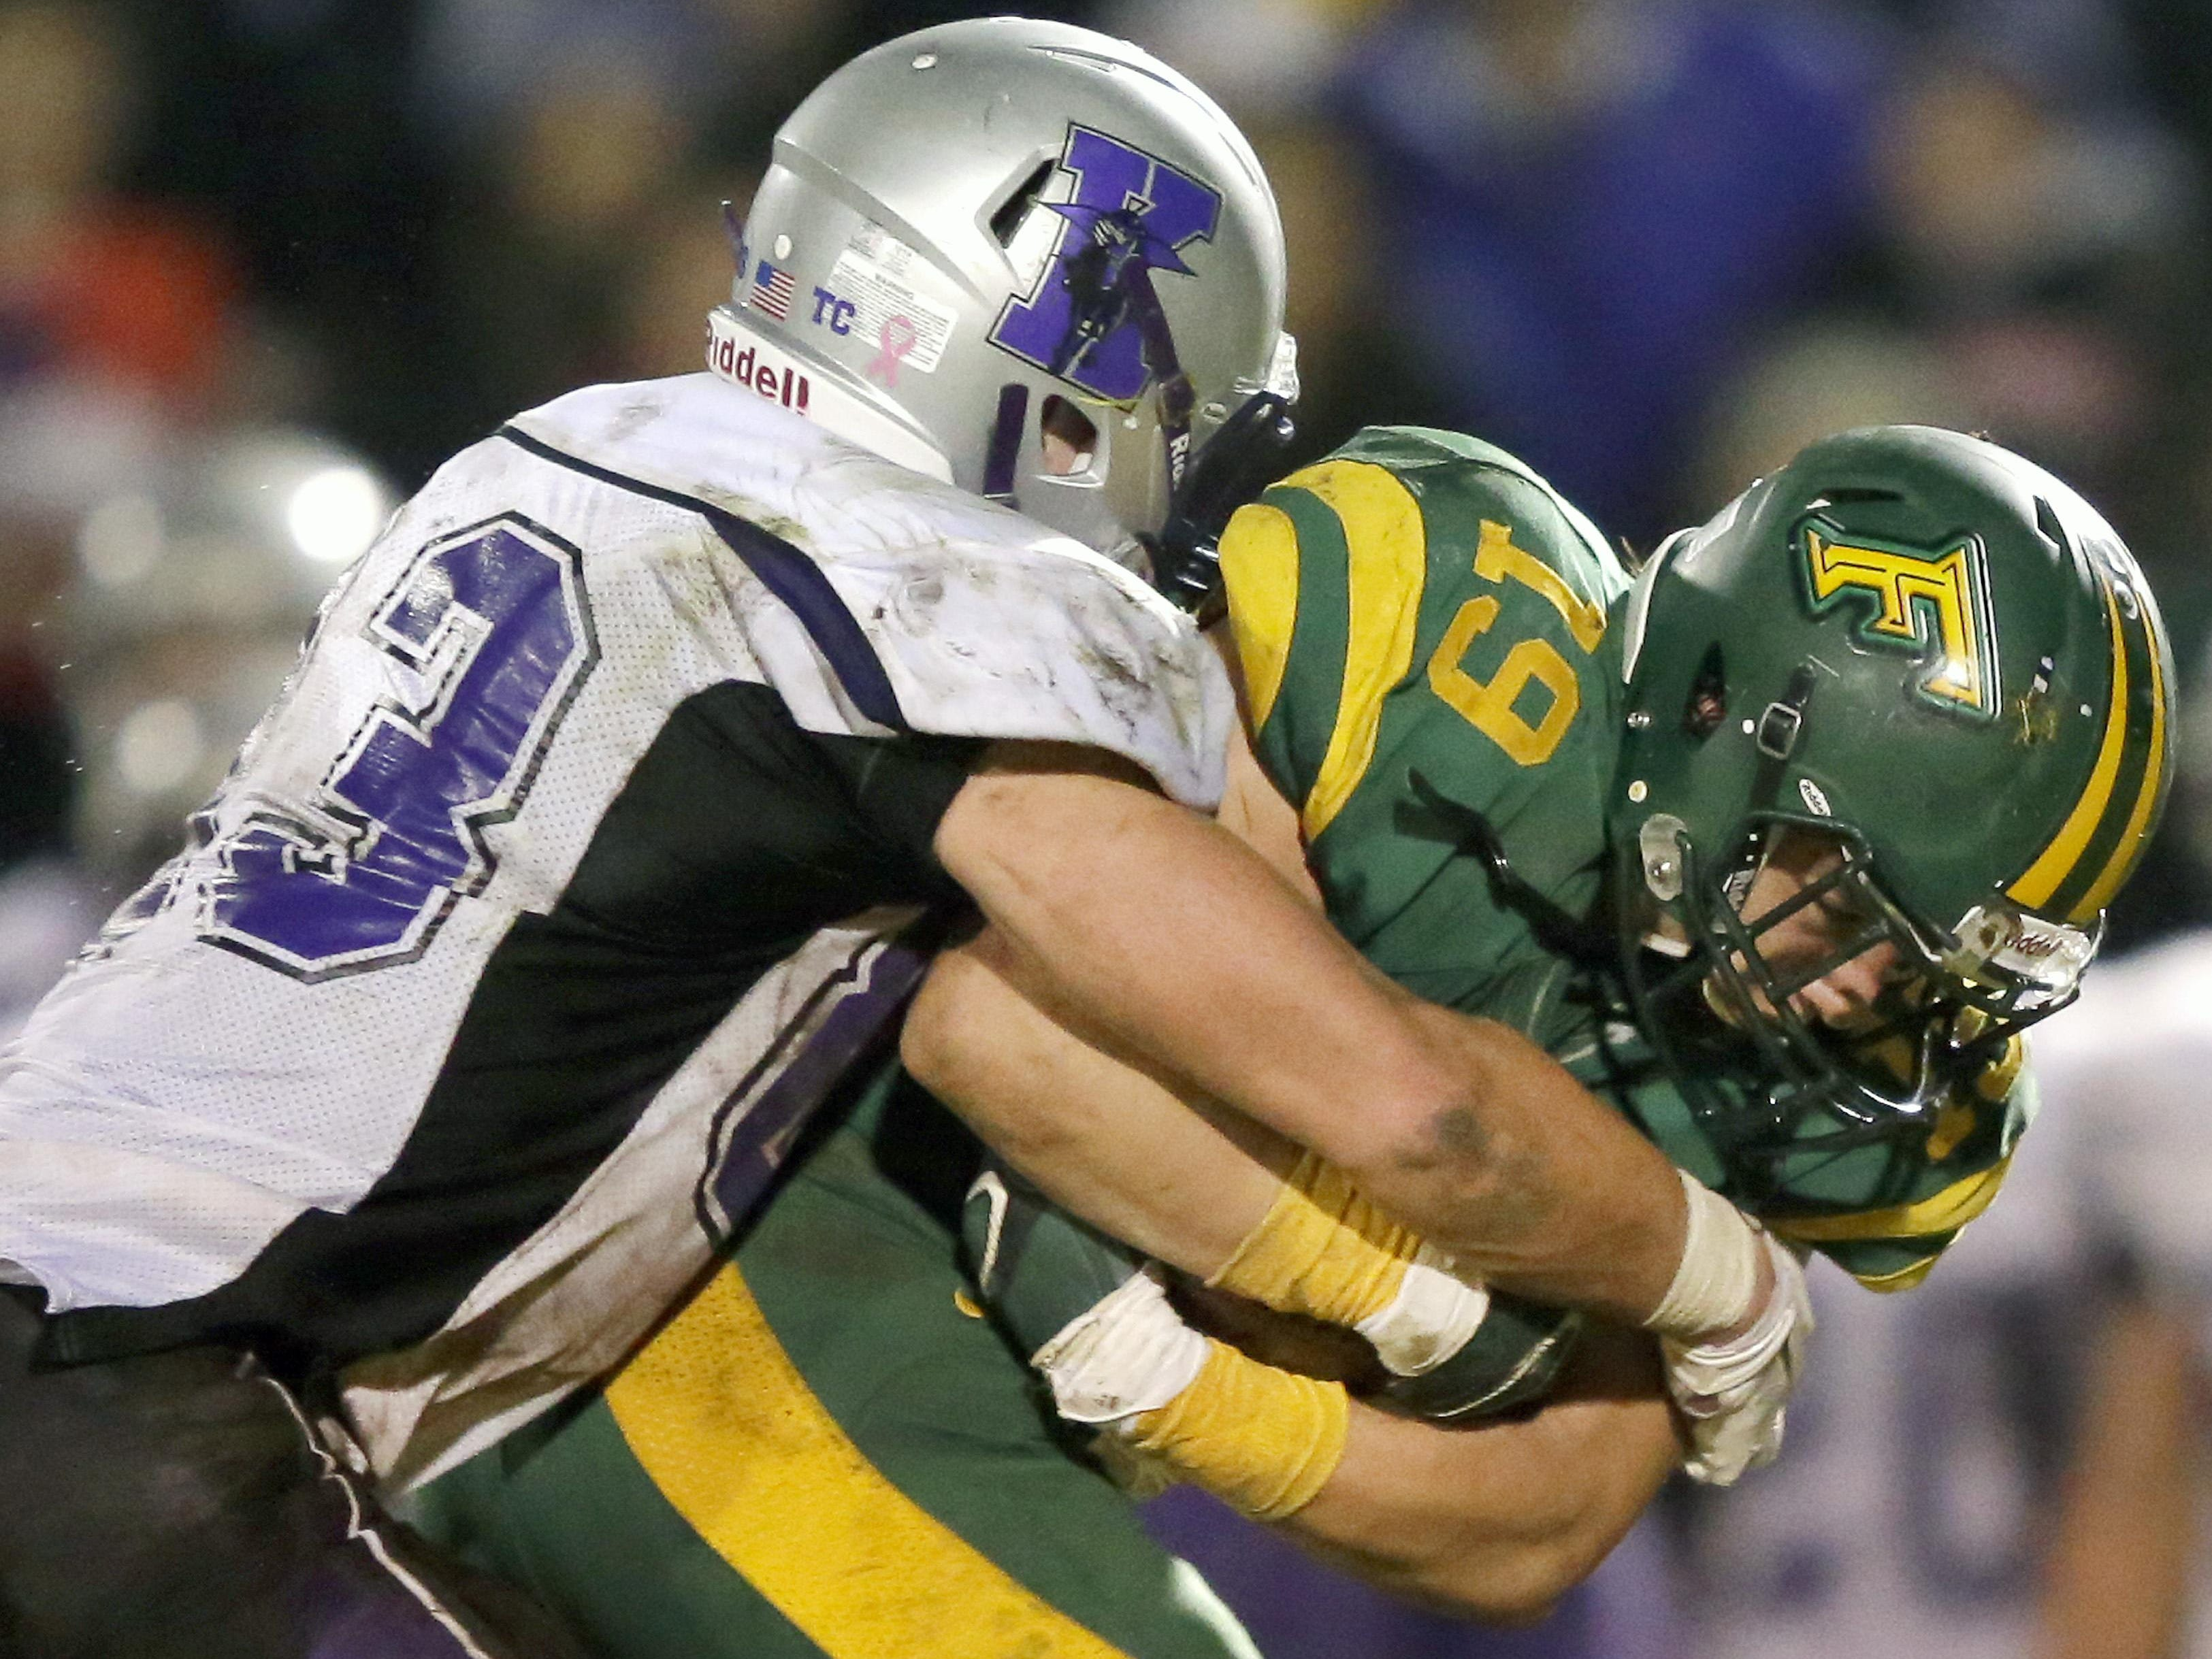 Kiel junior Austin Goehring (83) was the co-Defensive Player of the Year in the Eastern Wisconsin Conference.